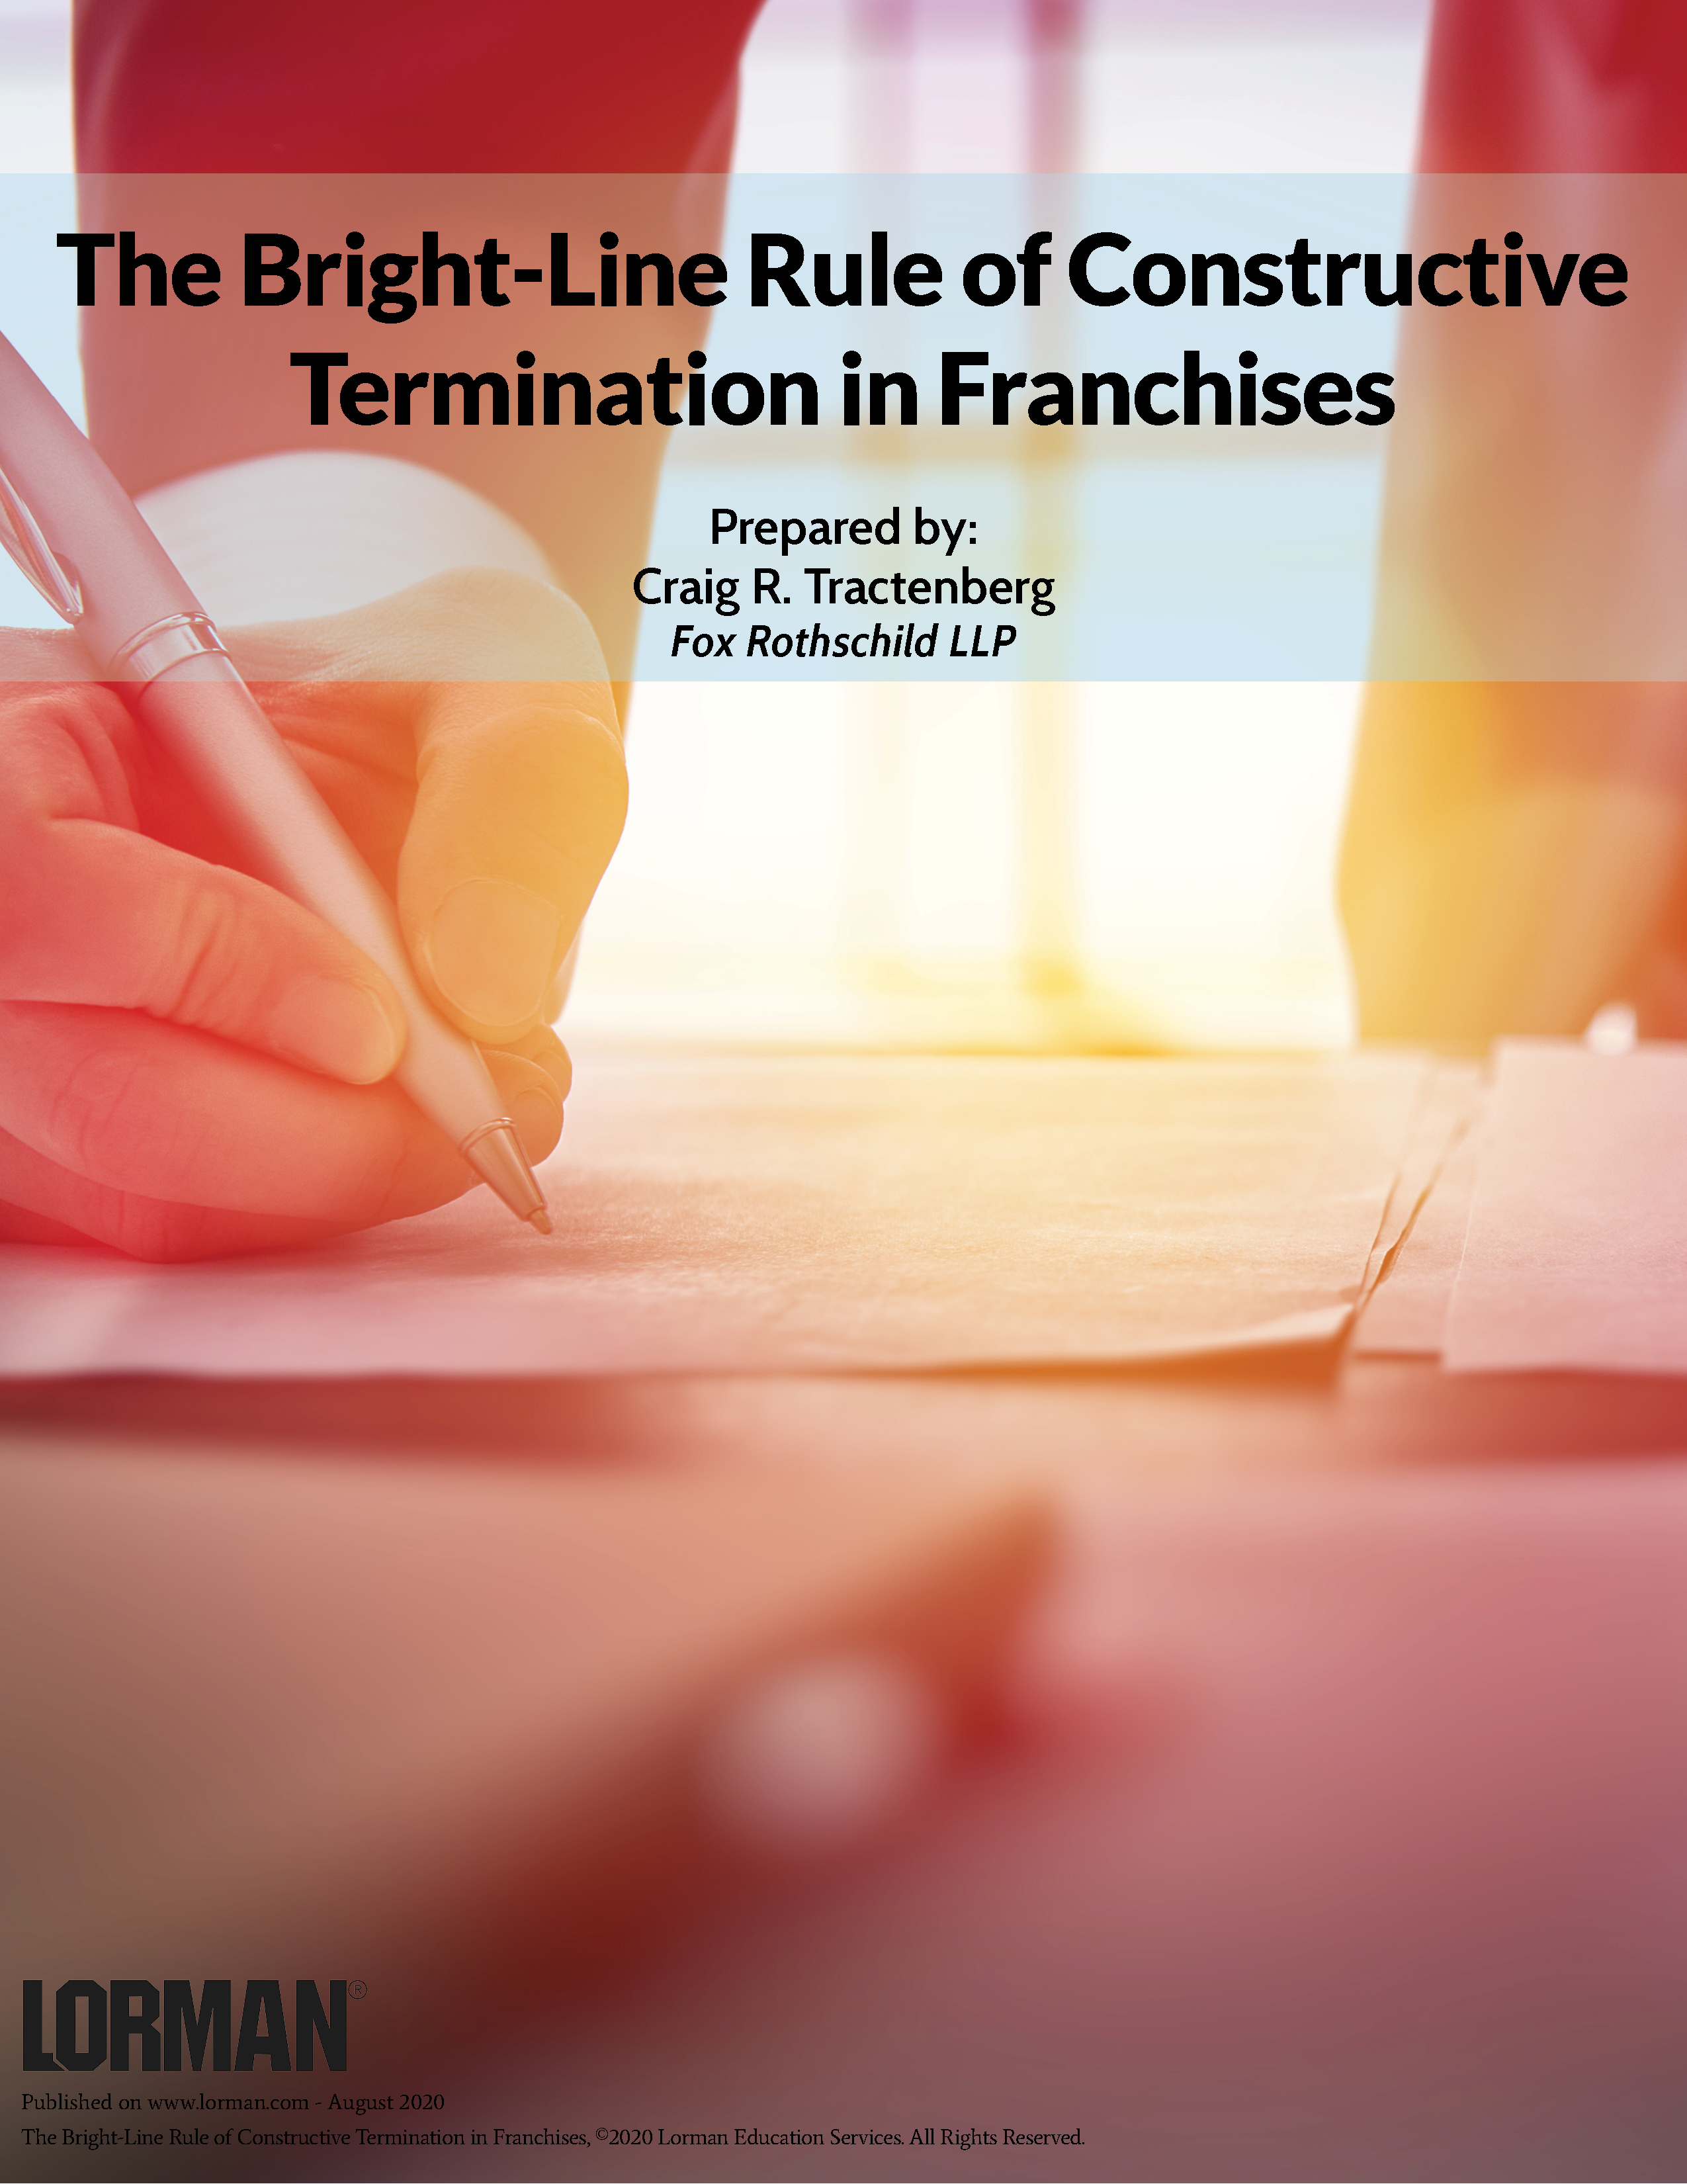 The Bright-Line Rule of Constructive Termination in Franchises